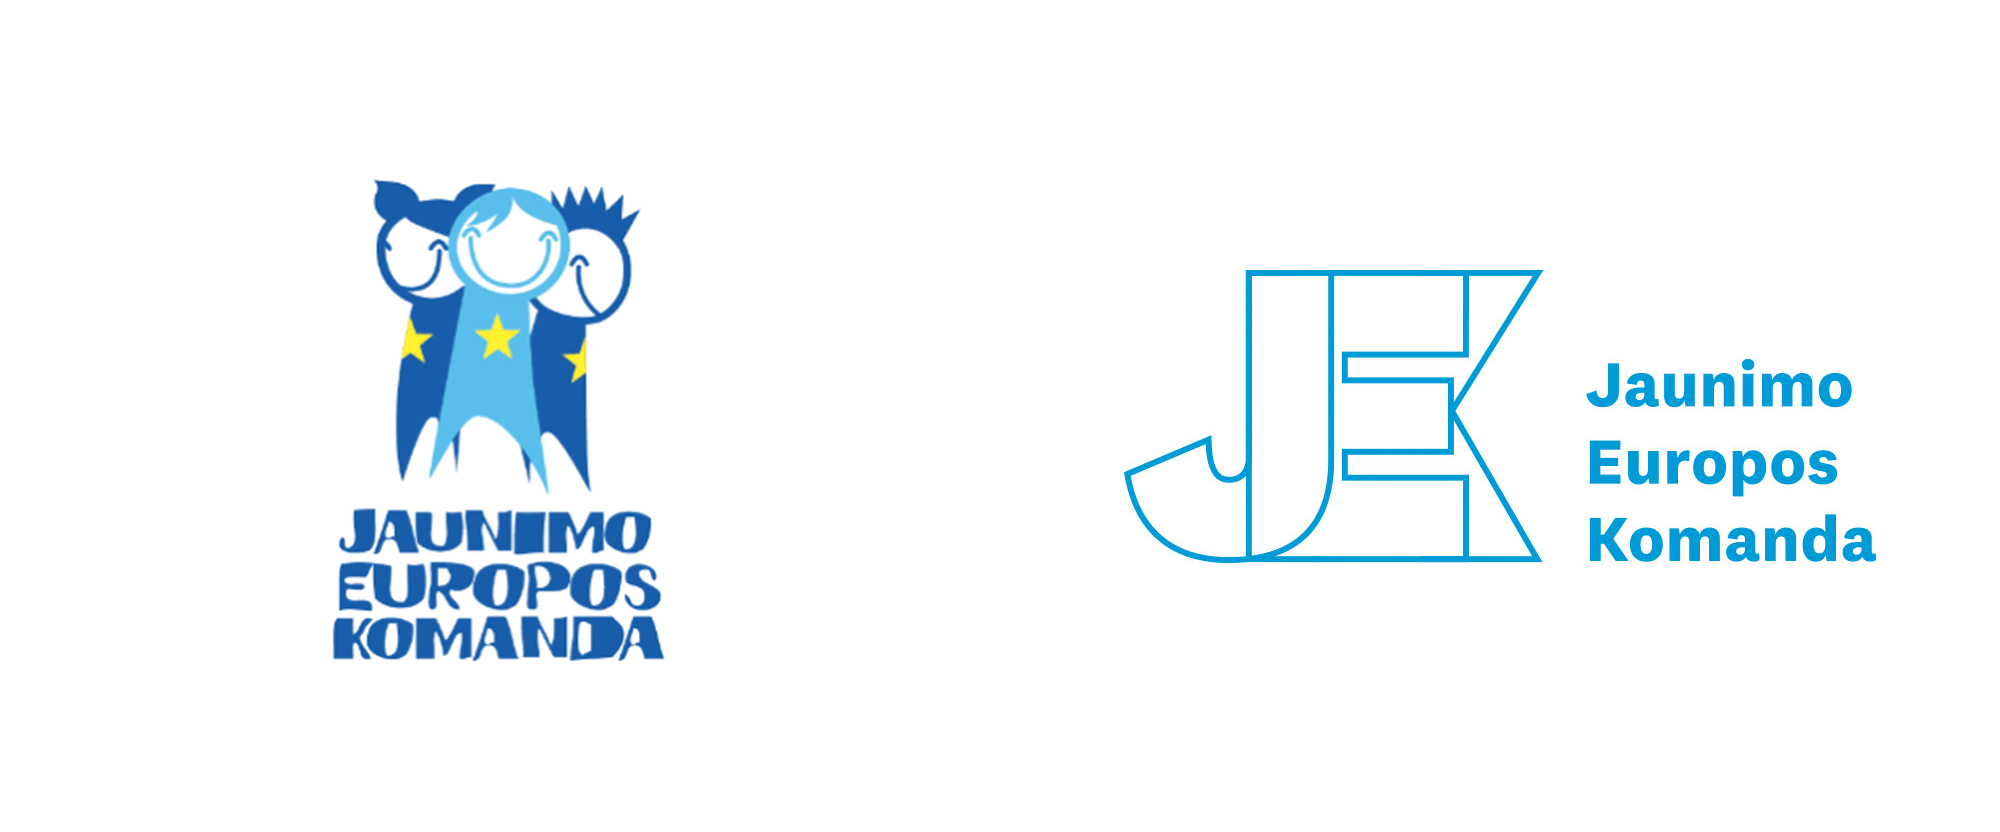 New Logo and Identity for Jaunimo Europos Komanda by Pretty Much Agency